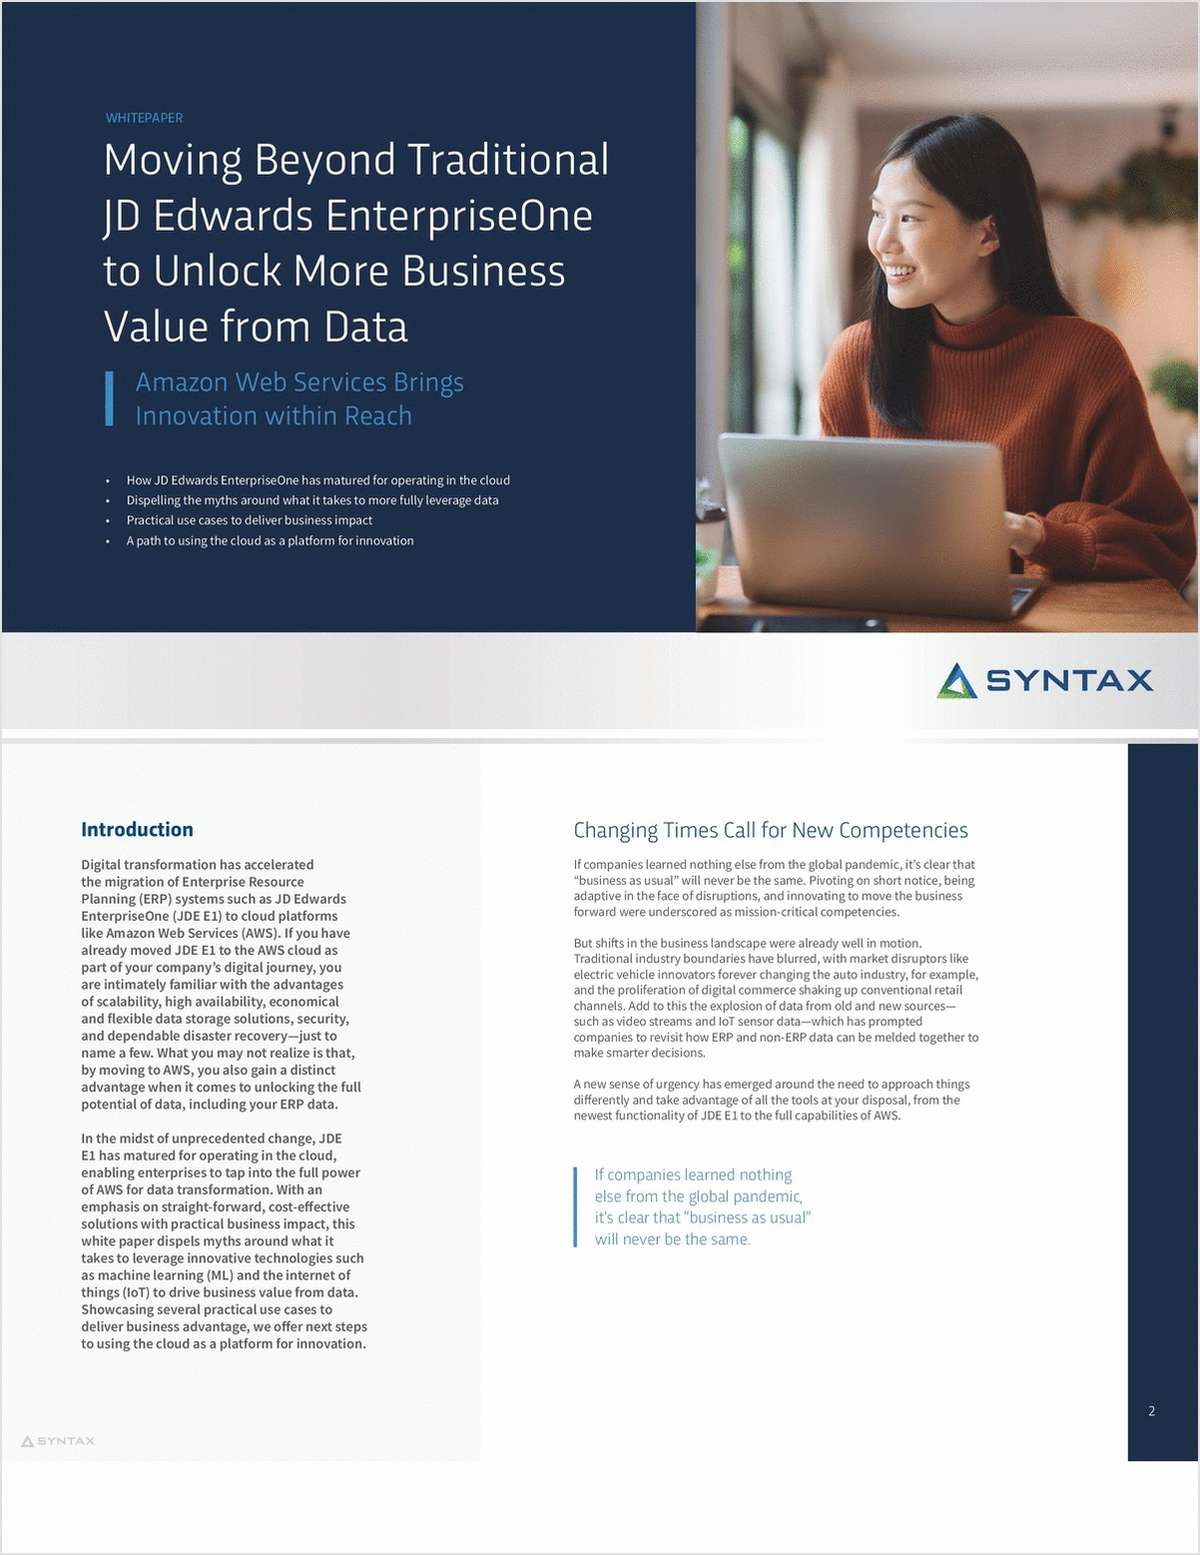 Moving Beyond Traditional JD Edwards EnterpriseOne to Unlock More Business Value from Data